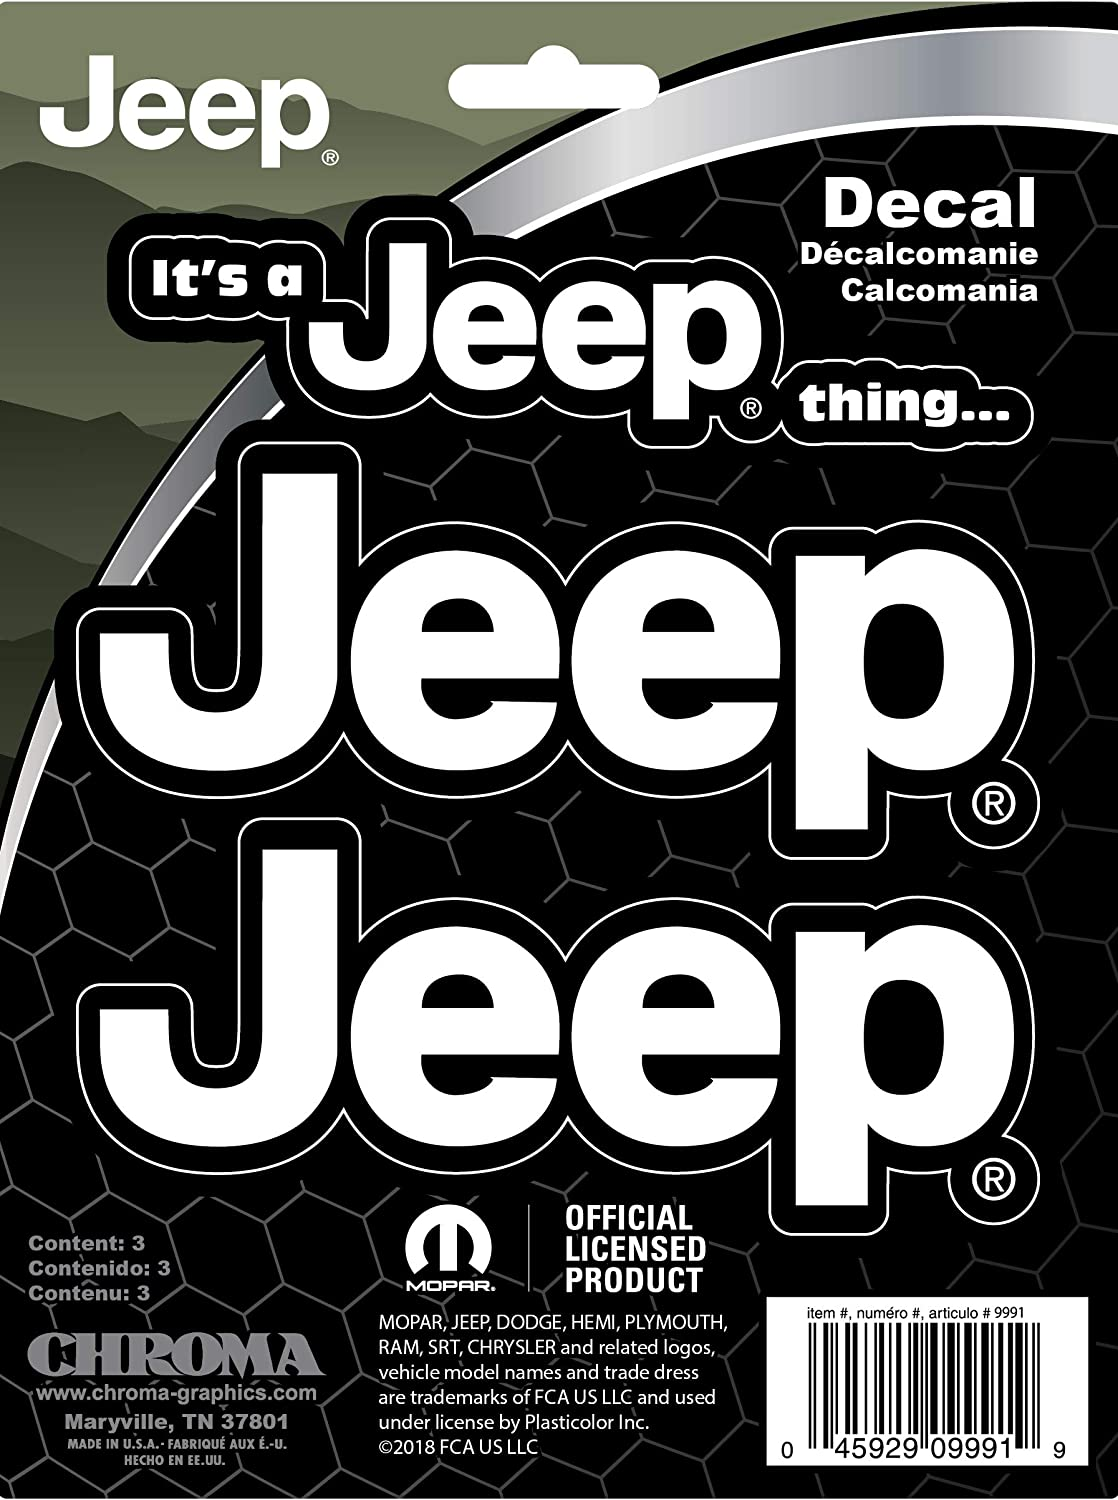 CHROMA 009991 Jeep It's a Jeep Thing Stick Onz Decal